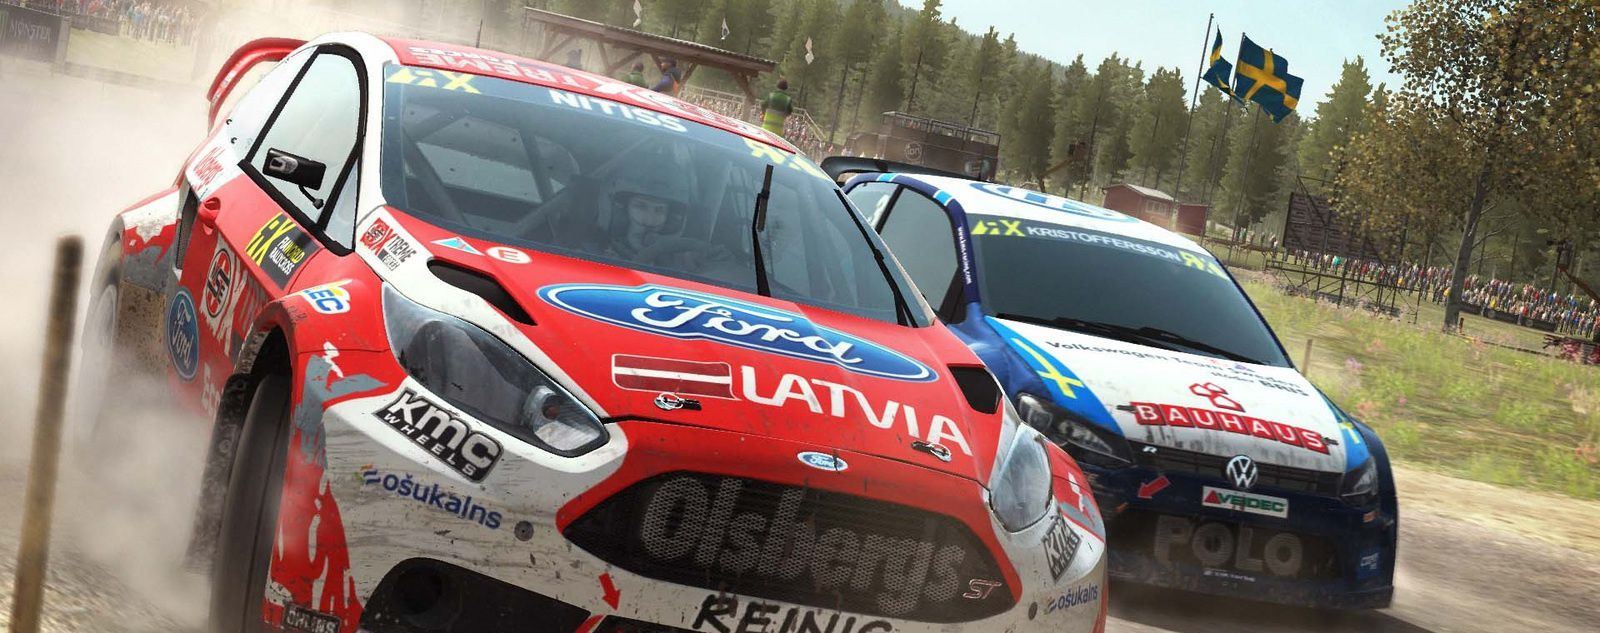 DiRT Rally - Découverte Update &quot&#x3B;RX Rallycross&quot&#x3B;.